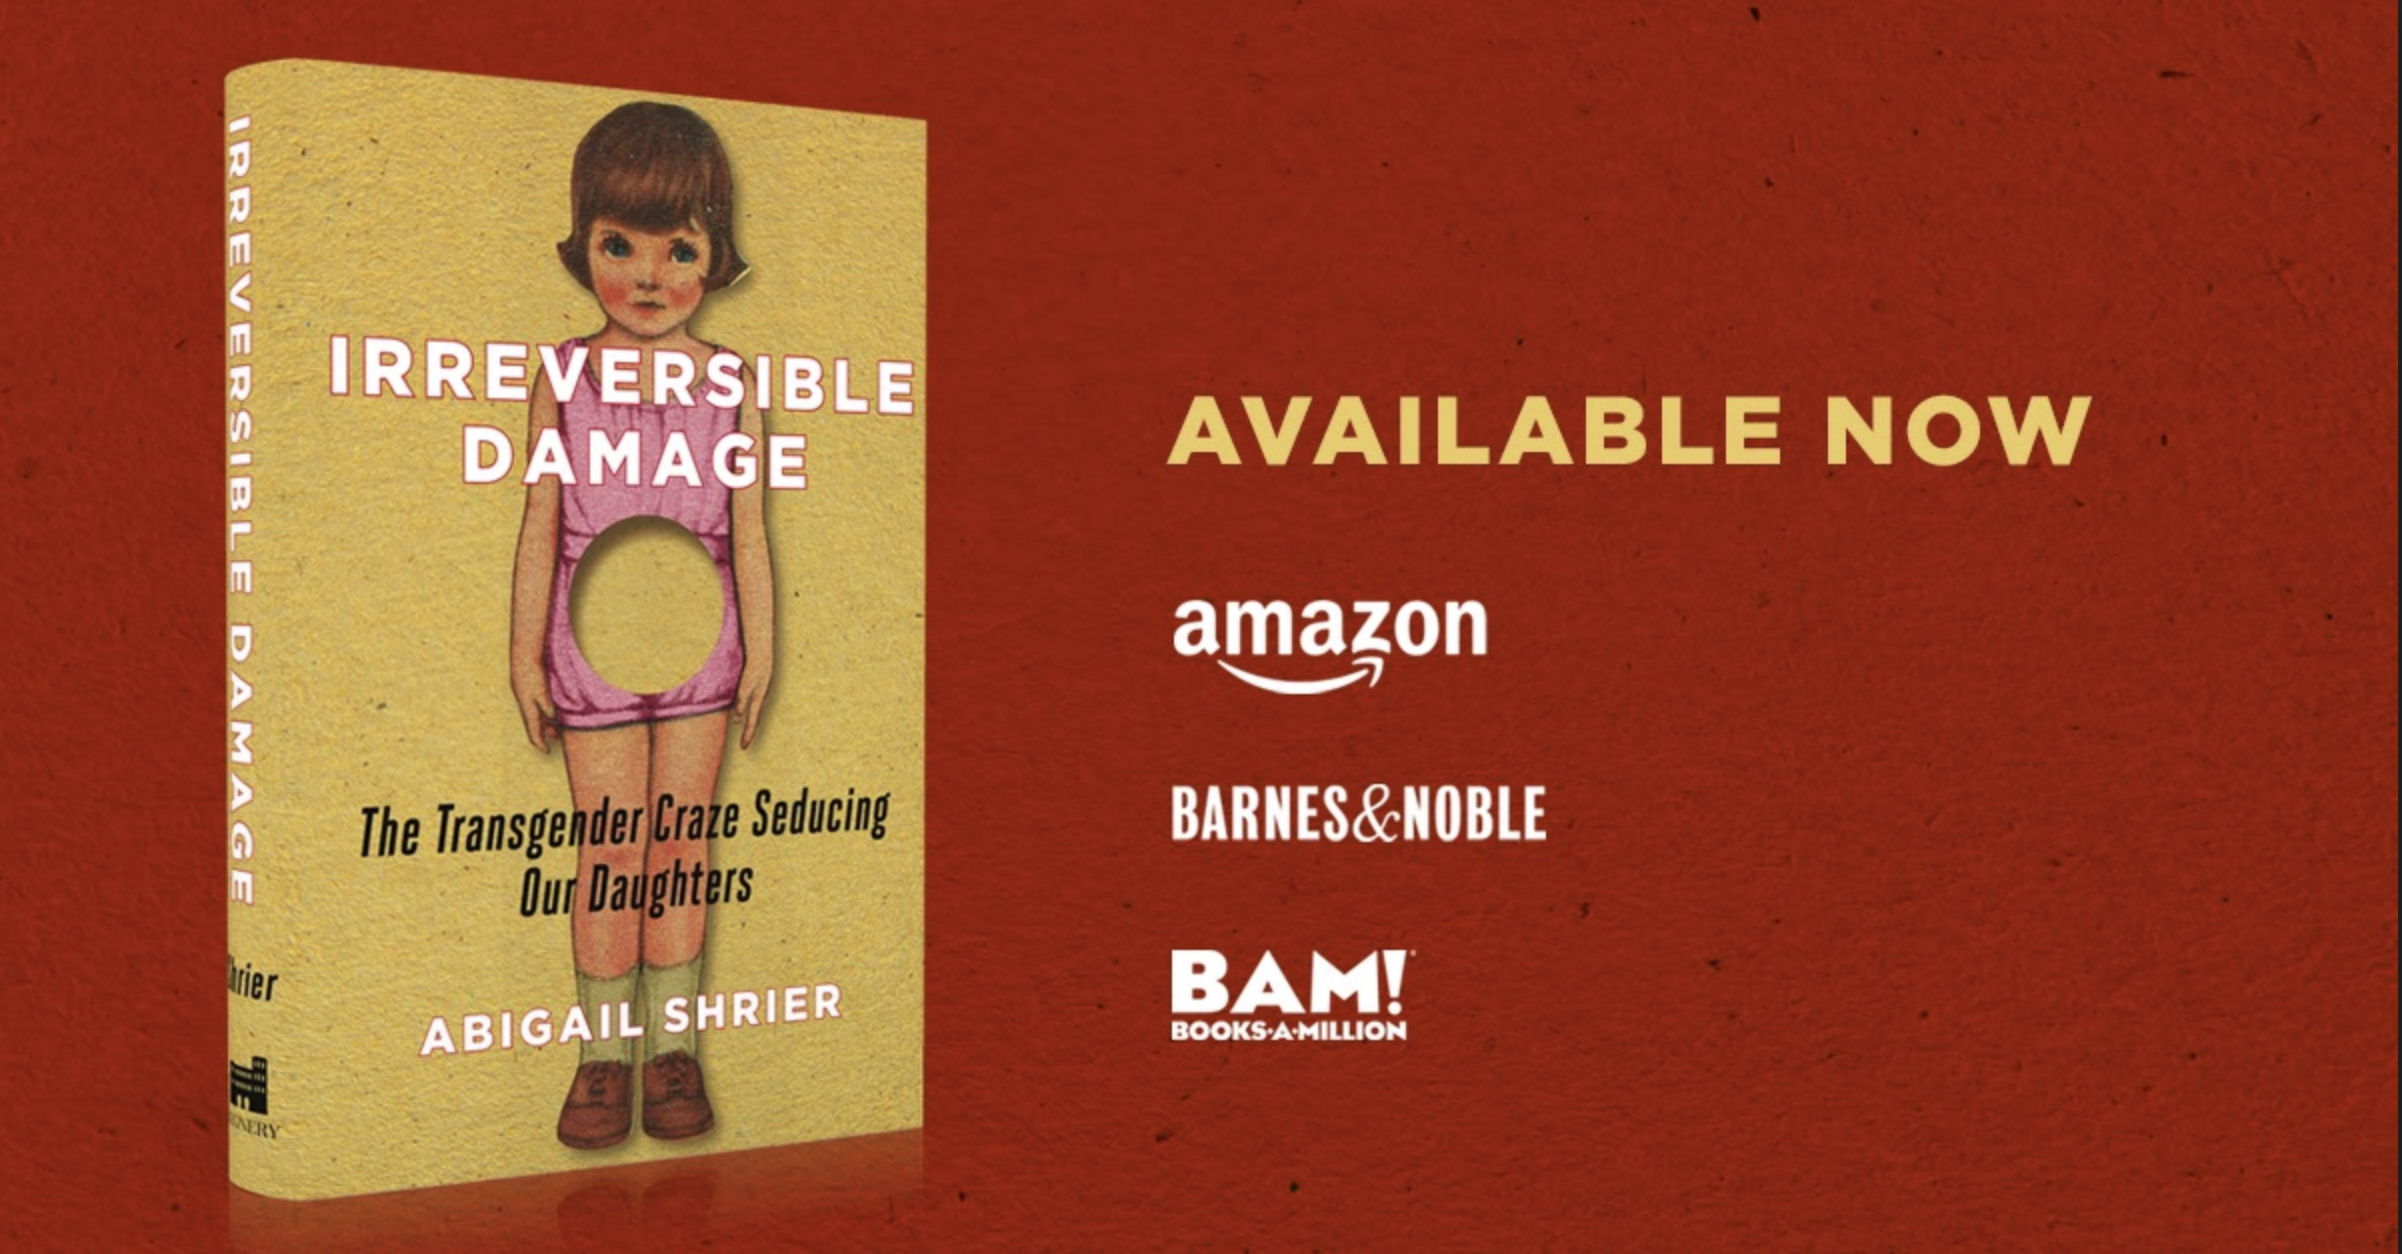 Amazon Bans Ads for Abigail Shrier's New Book Pointing Out How Transgender Ideology Harms Girls and Young Women